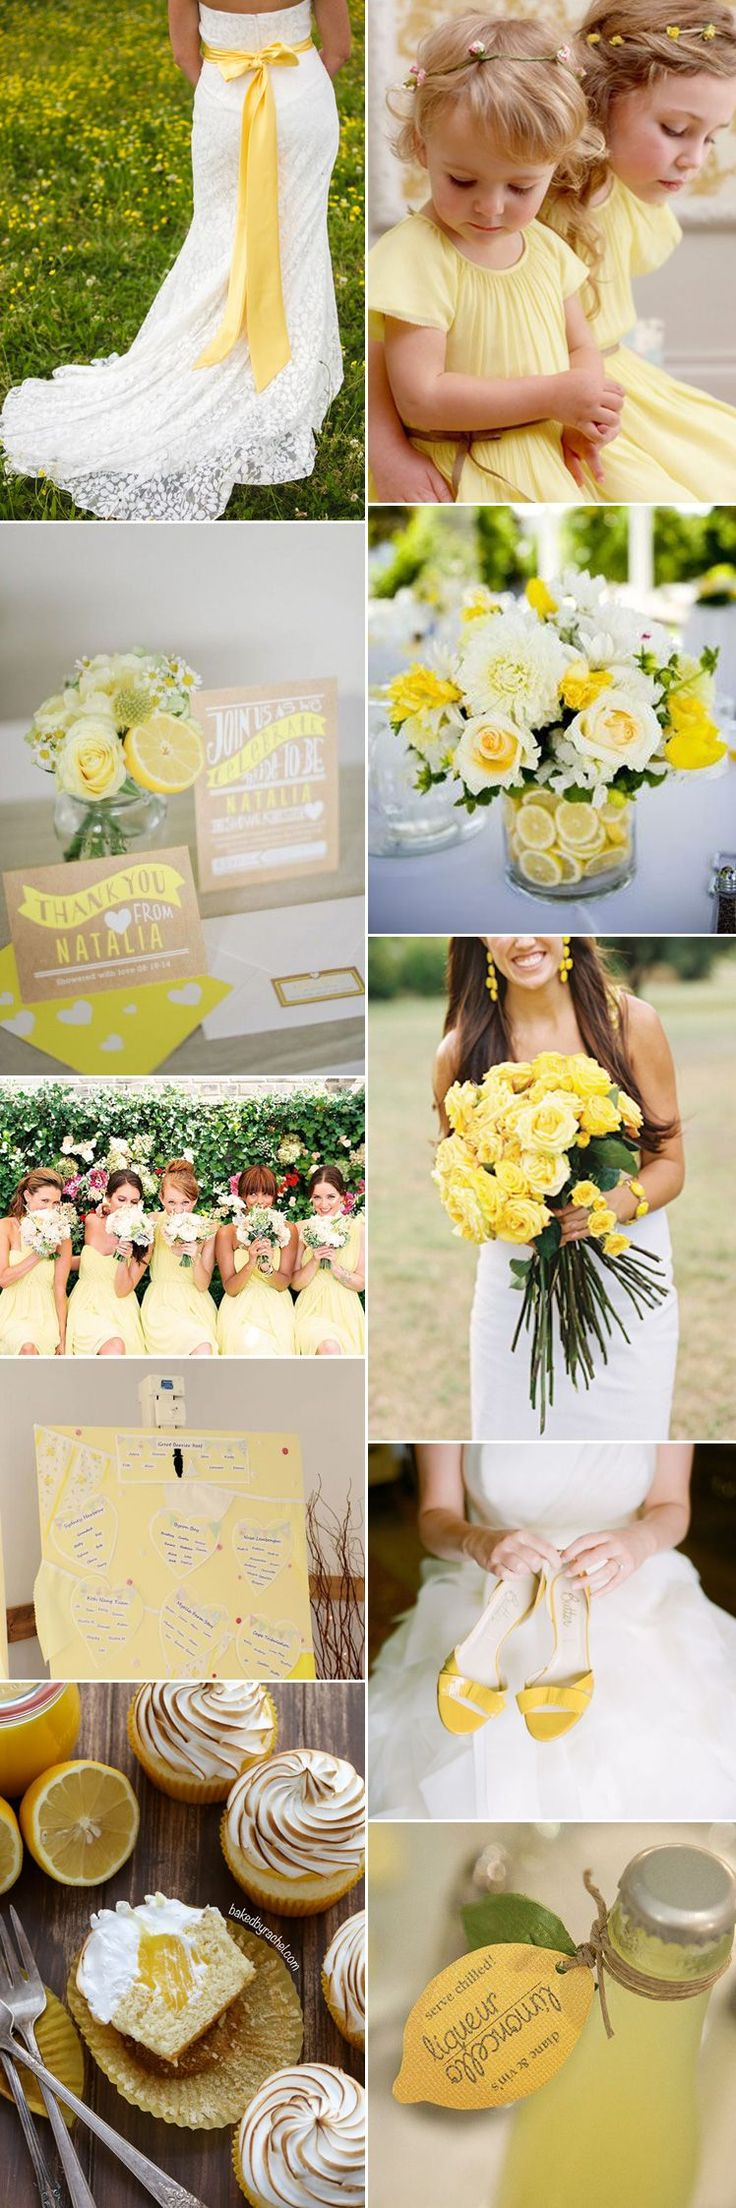 Embrace a vibrant lemon sorbet wedding theme via Glitzy Secrets (GS Inspiration)